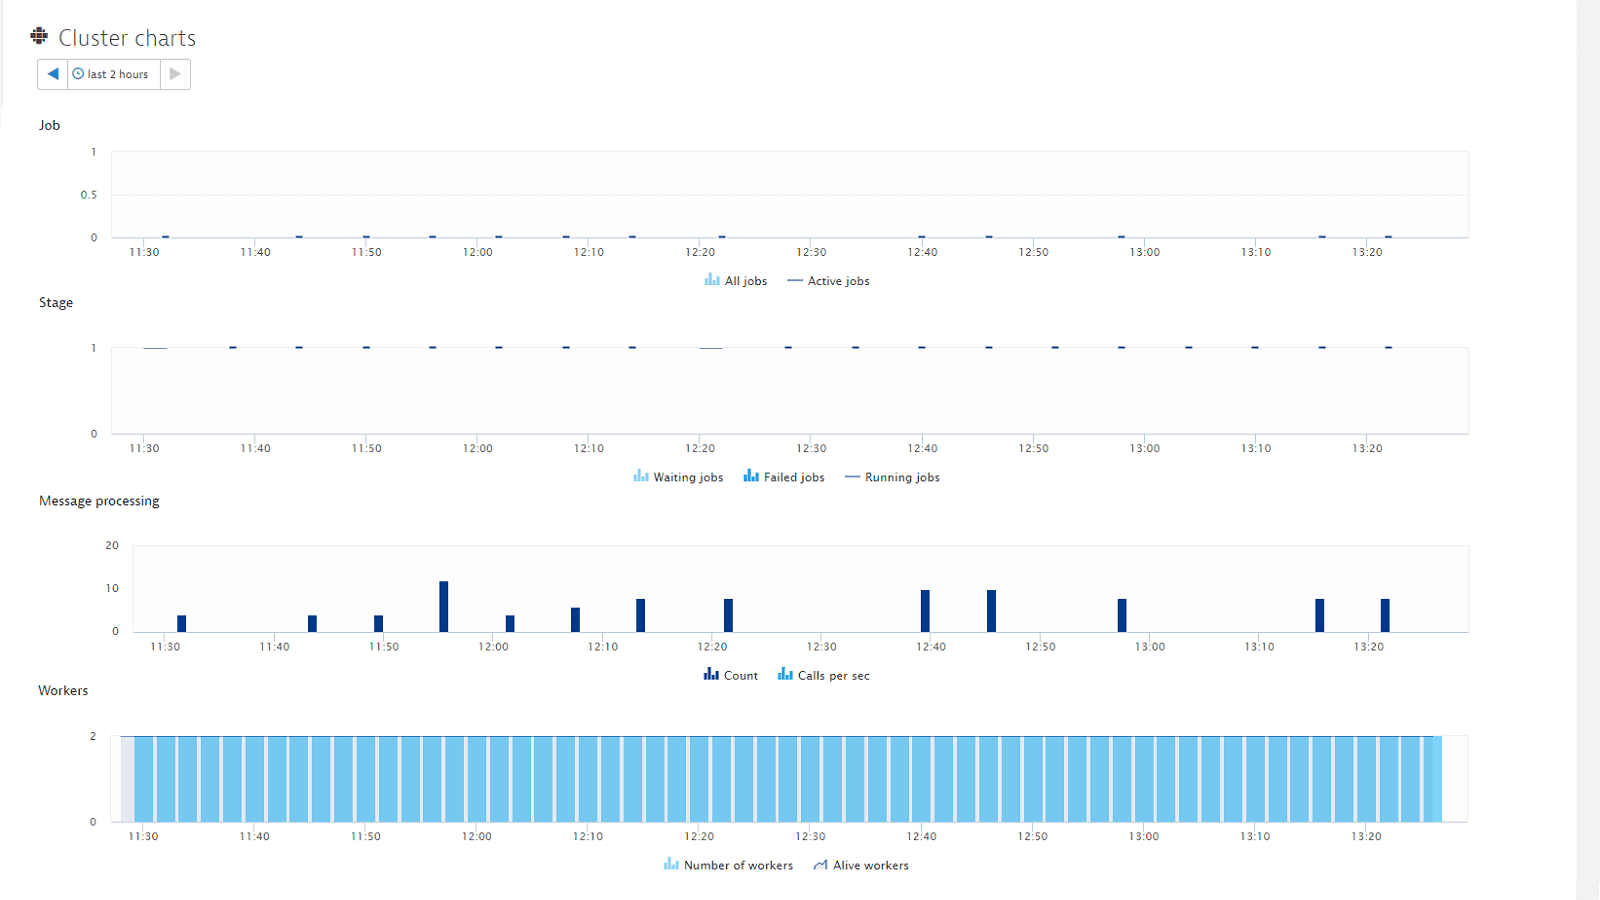 Spark cluster charts